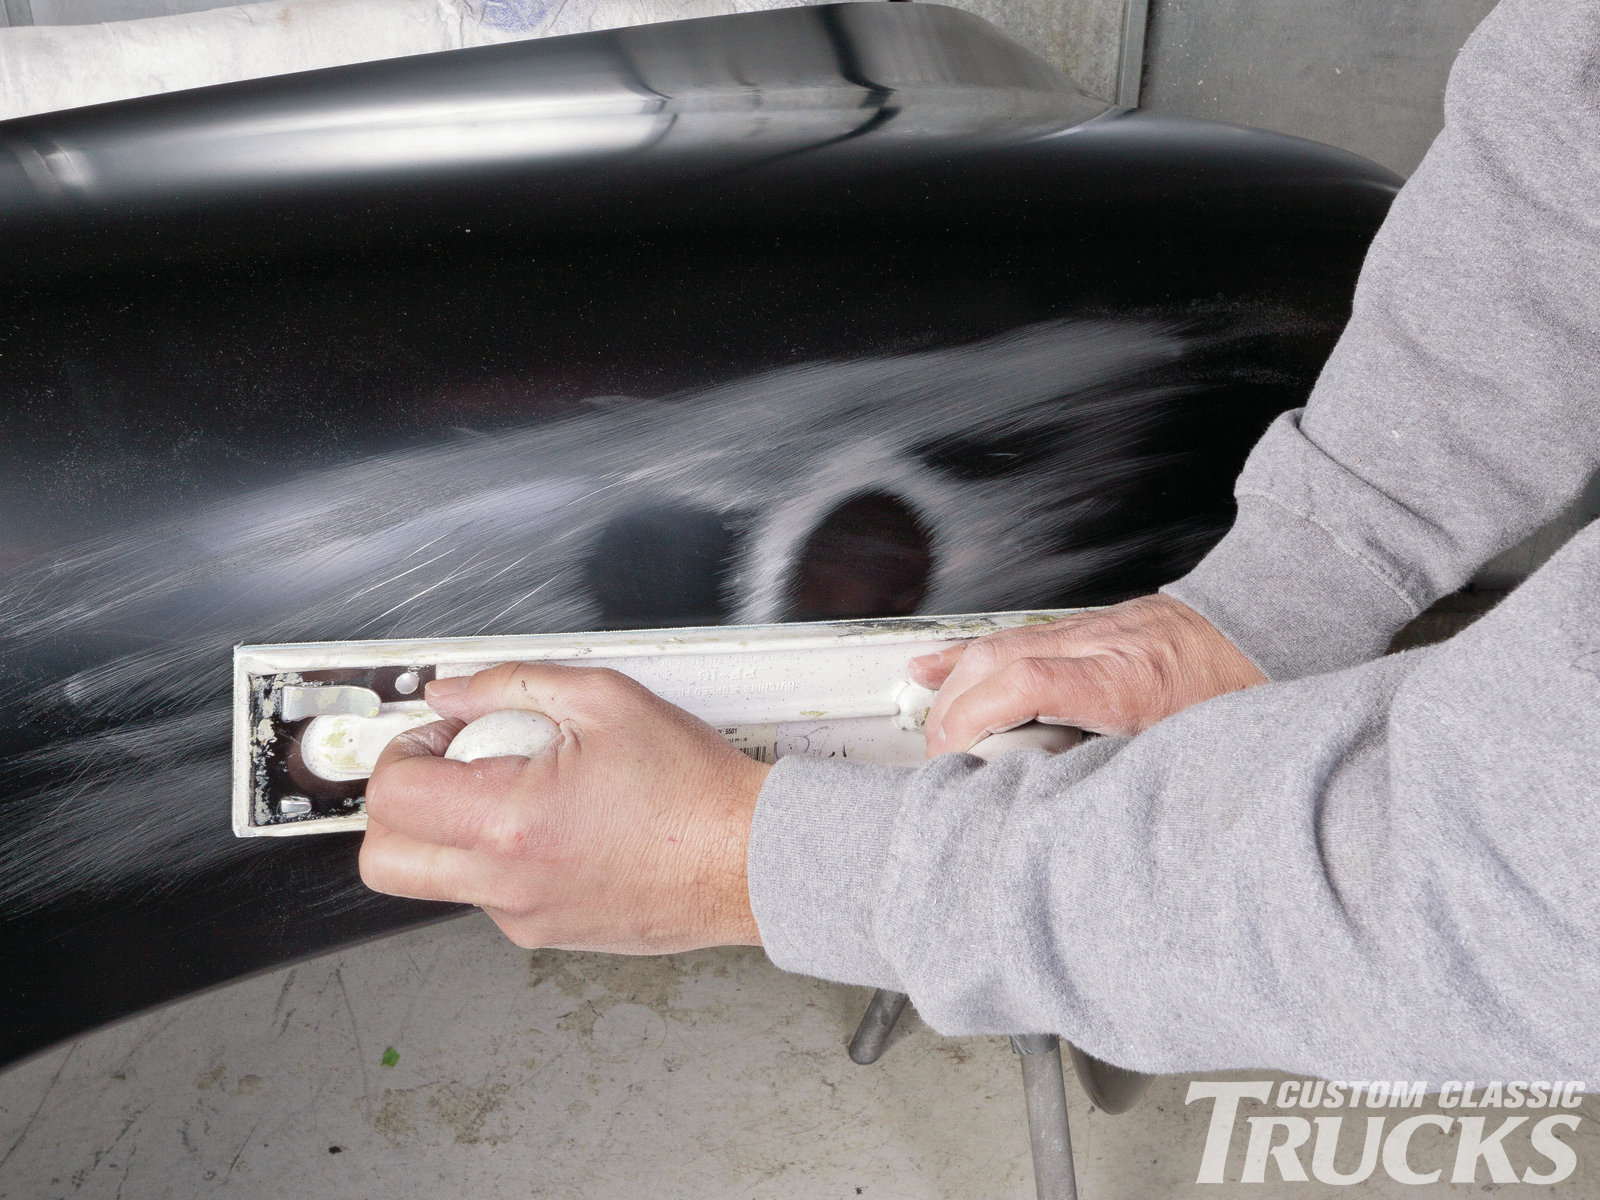 4. The first step in repairing any dent is to reveal the high and low spots on the panel. To do this, a fixed body file is used to skim the damaged area. The high spots are scuffed as the file is drug over the surface while the low spots remain unaffected.